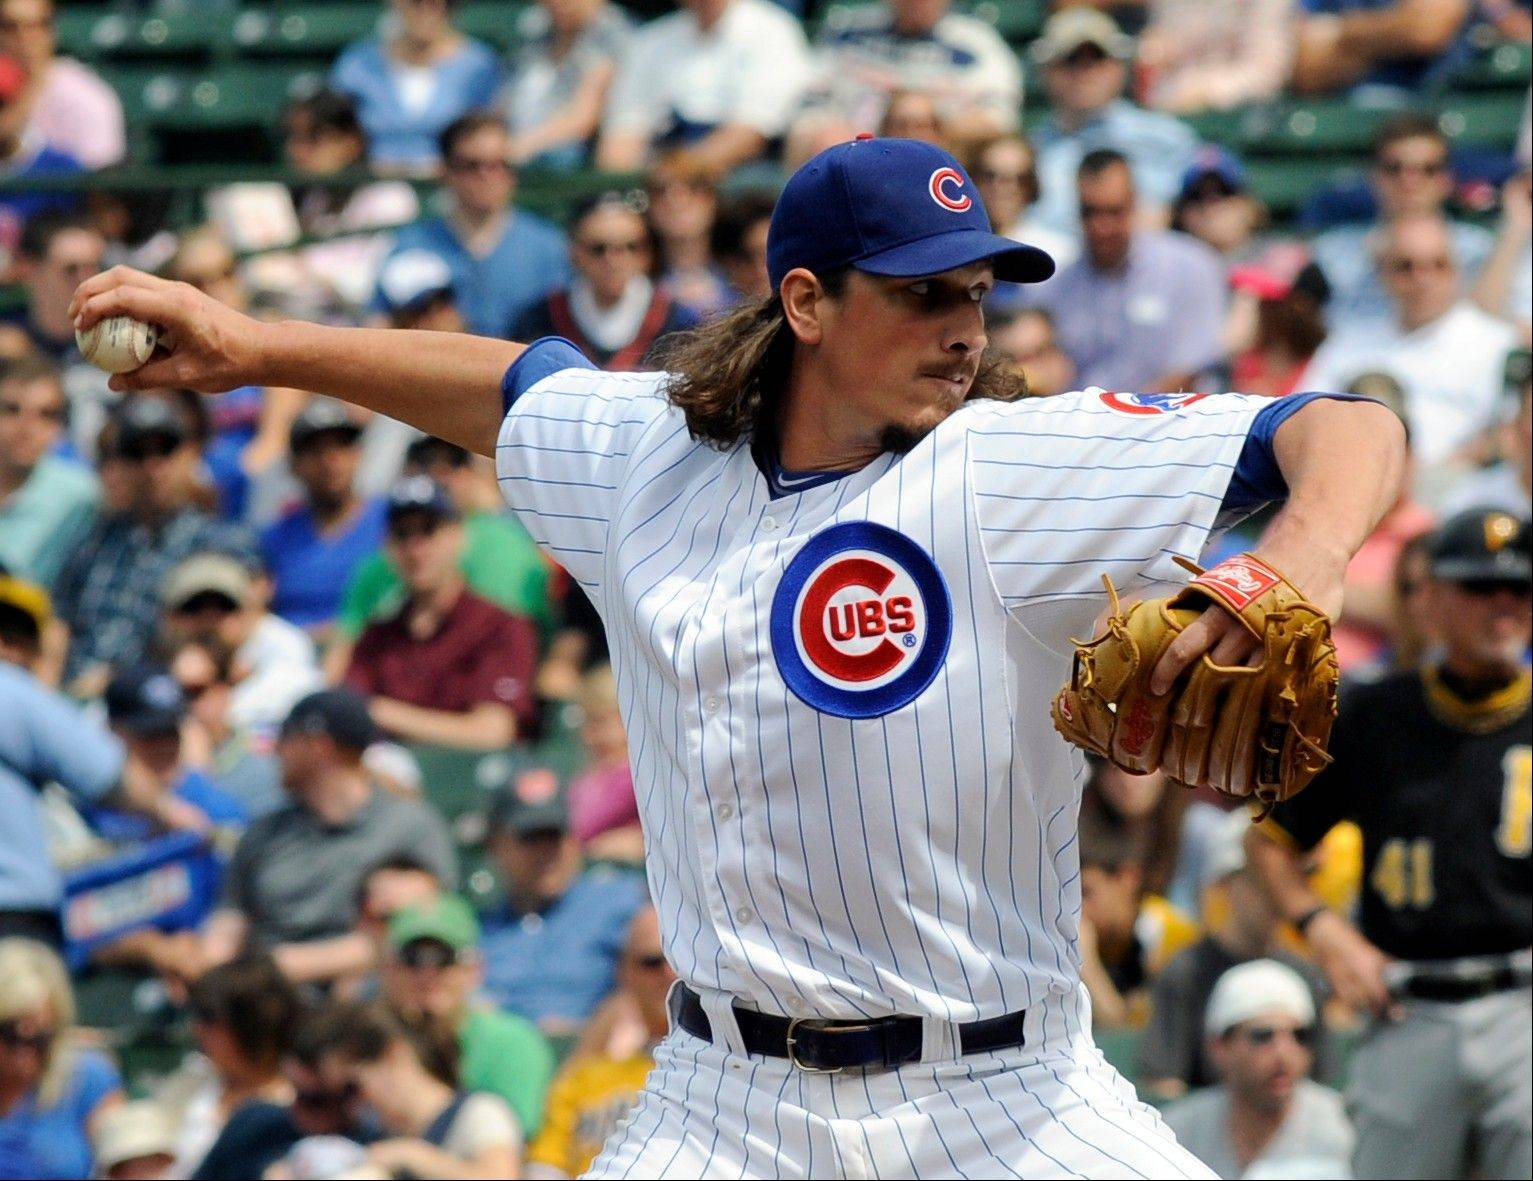 Chicago Cubs pitcher Jeff Samardzija delivers to a Pittsburgh Pirates batter during a baseball game on Saturday June 8, 2013, in Chicago, Ill.